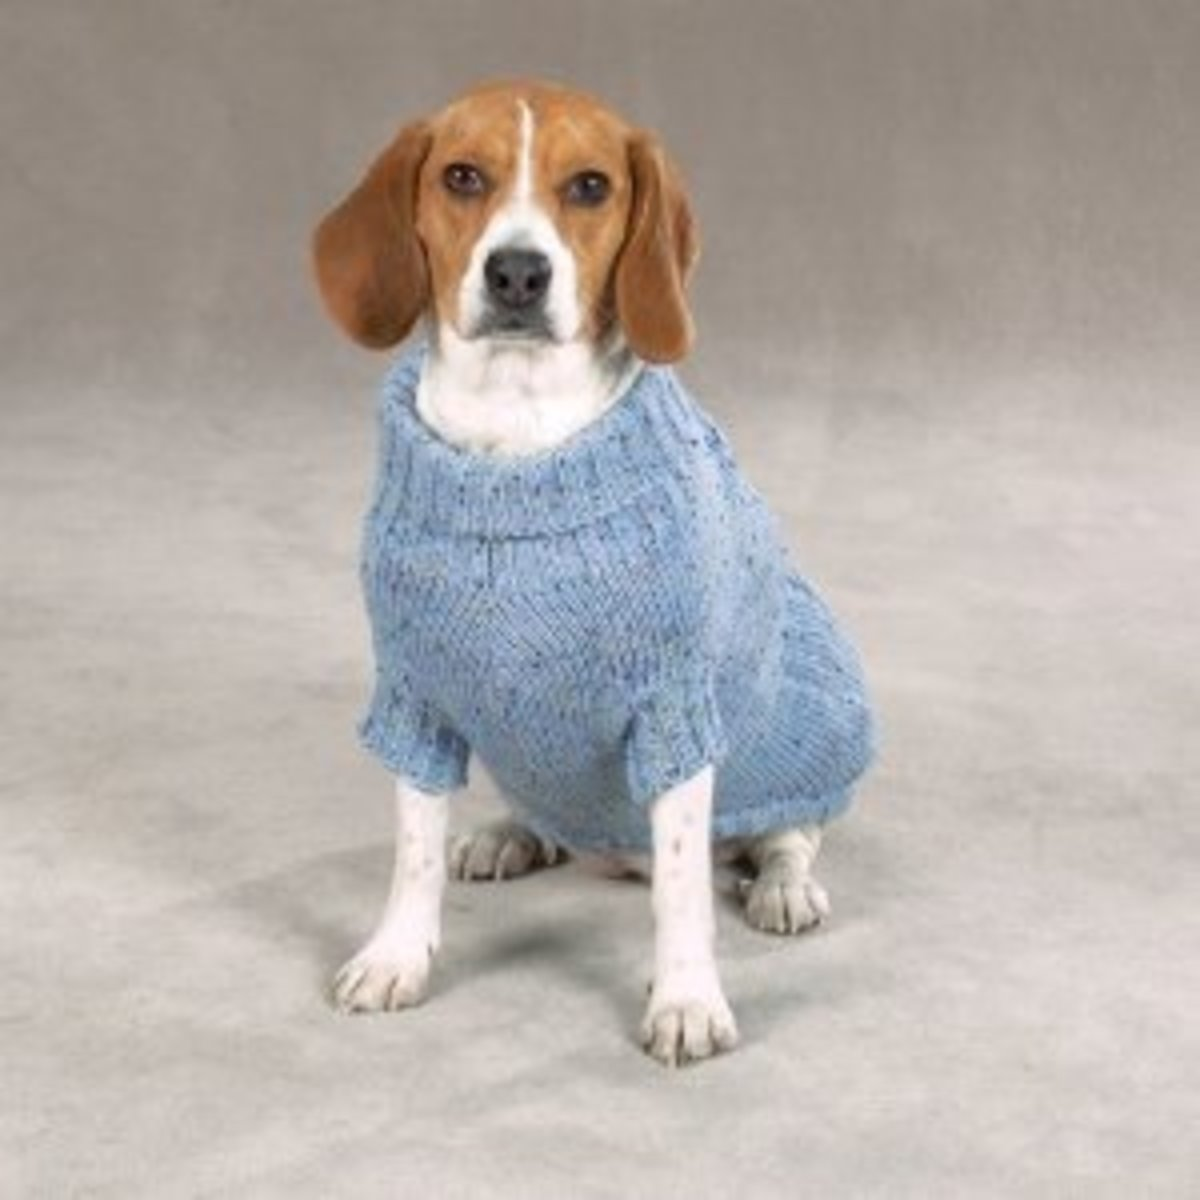 Dog Clothes Patterns | Dog Coat Patterns | Purple Kitty